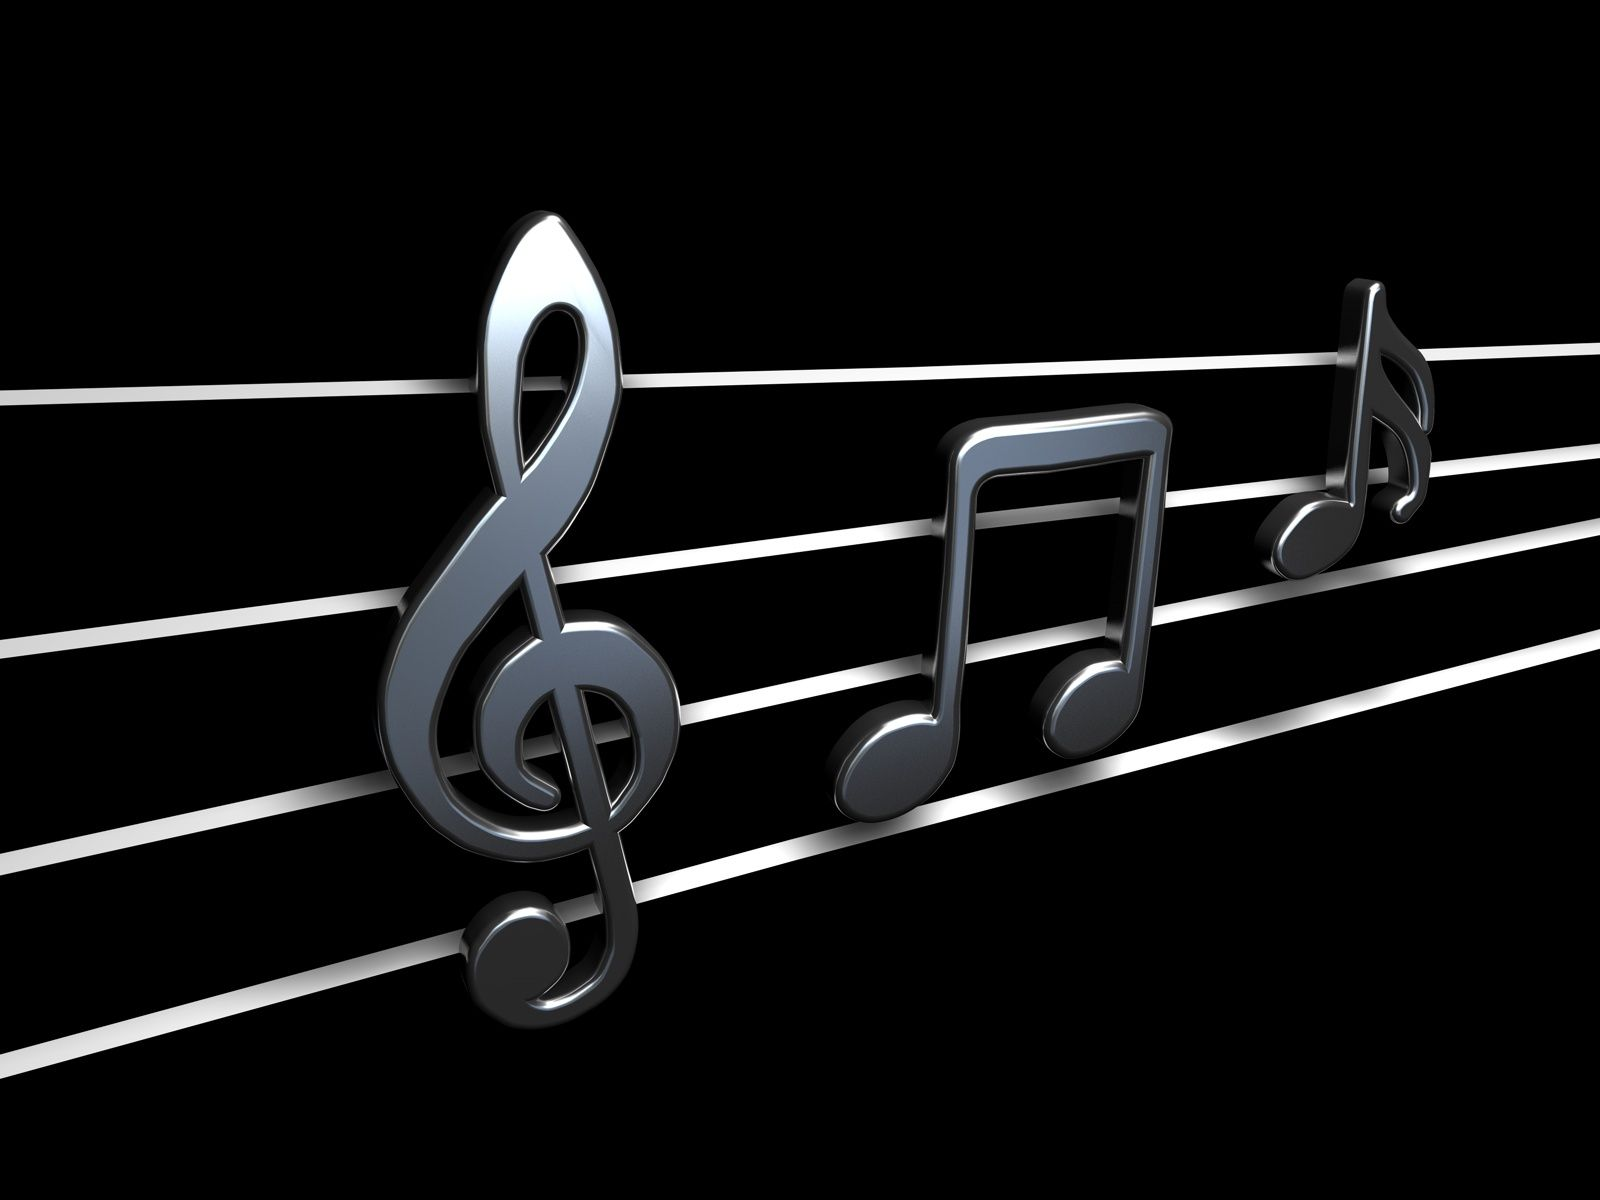 Music Notes 3d Abstract Misic Notes Music Wallpaper Wall9 Com Music Wallpaper Music Notes Music Art